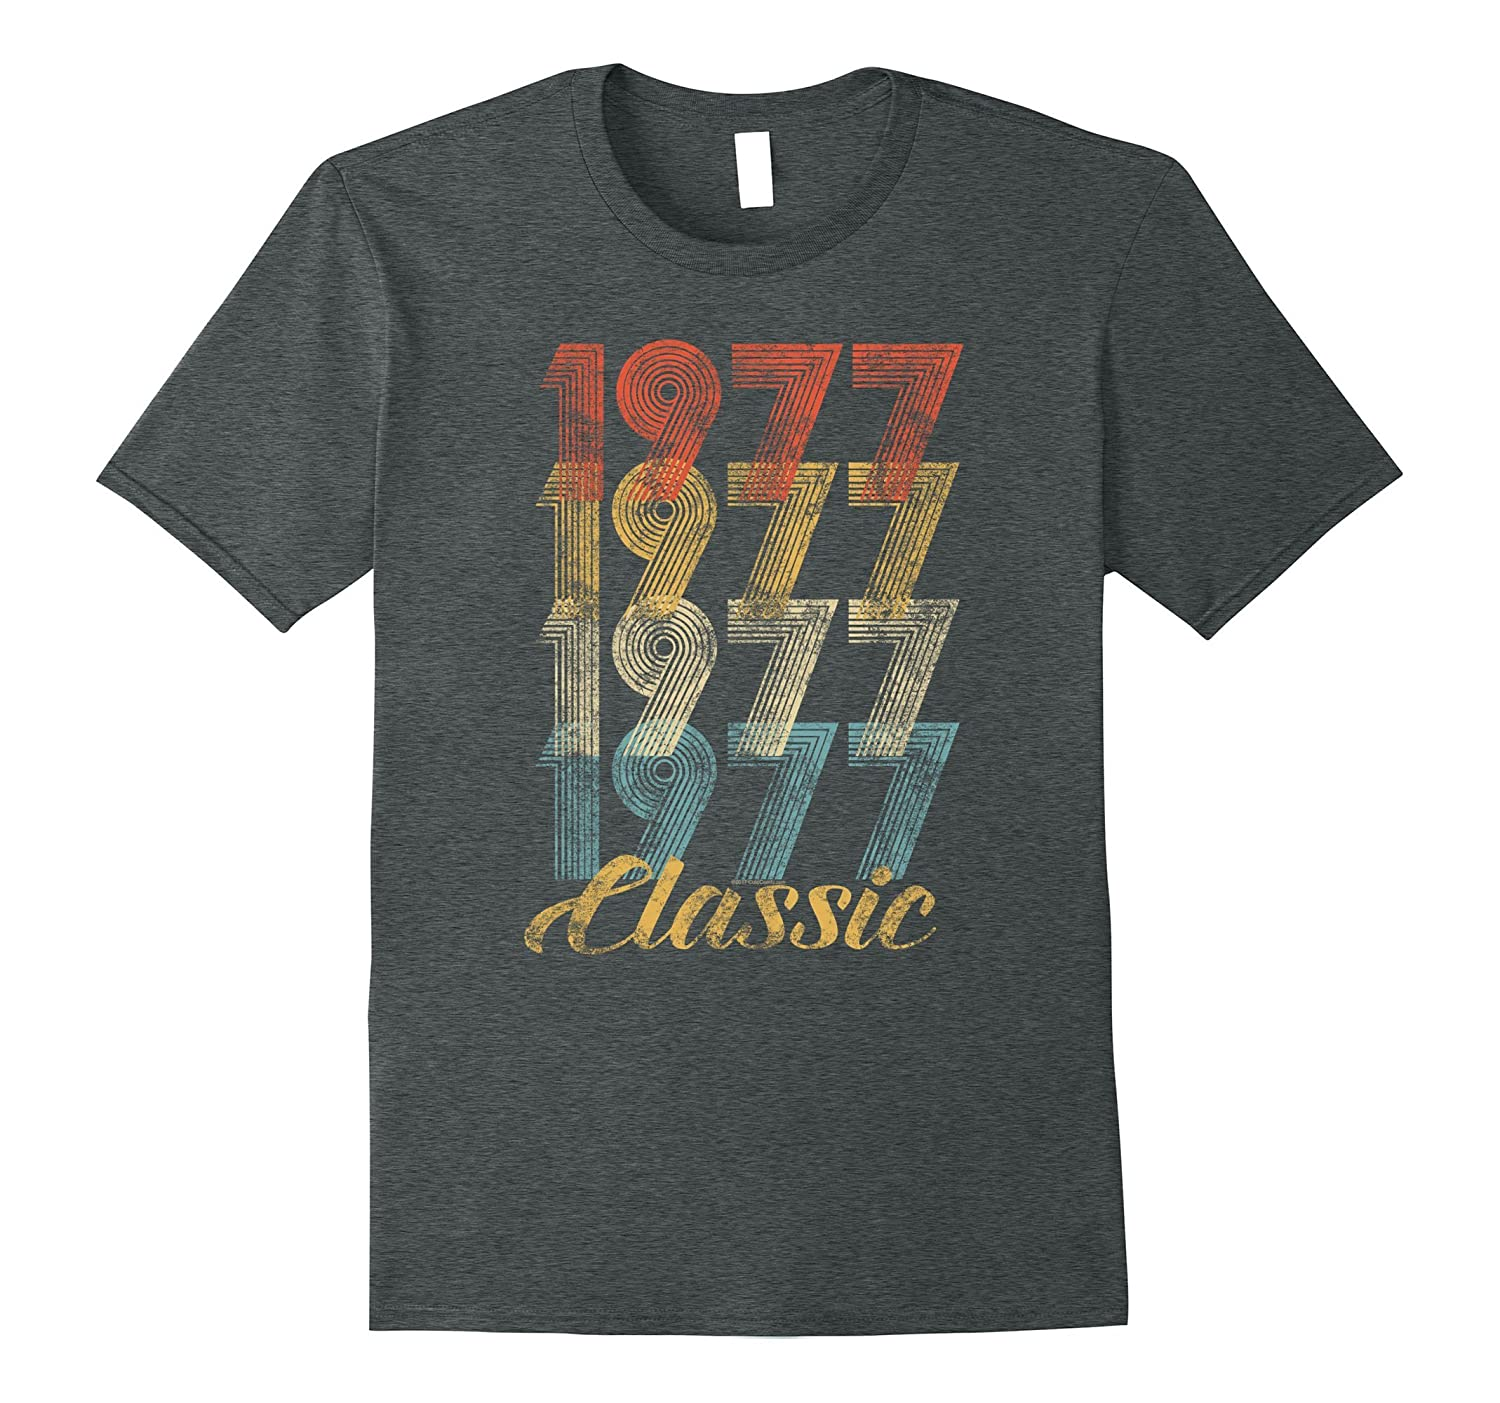 40th Birthday Gift Vintage 1977 T-Shirt for Men & Women-BN